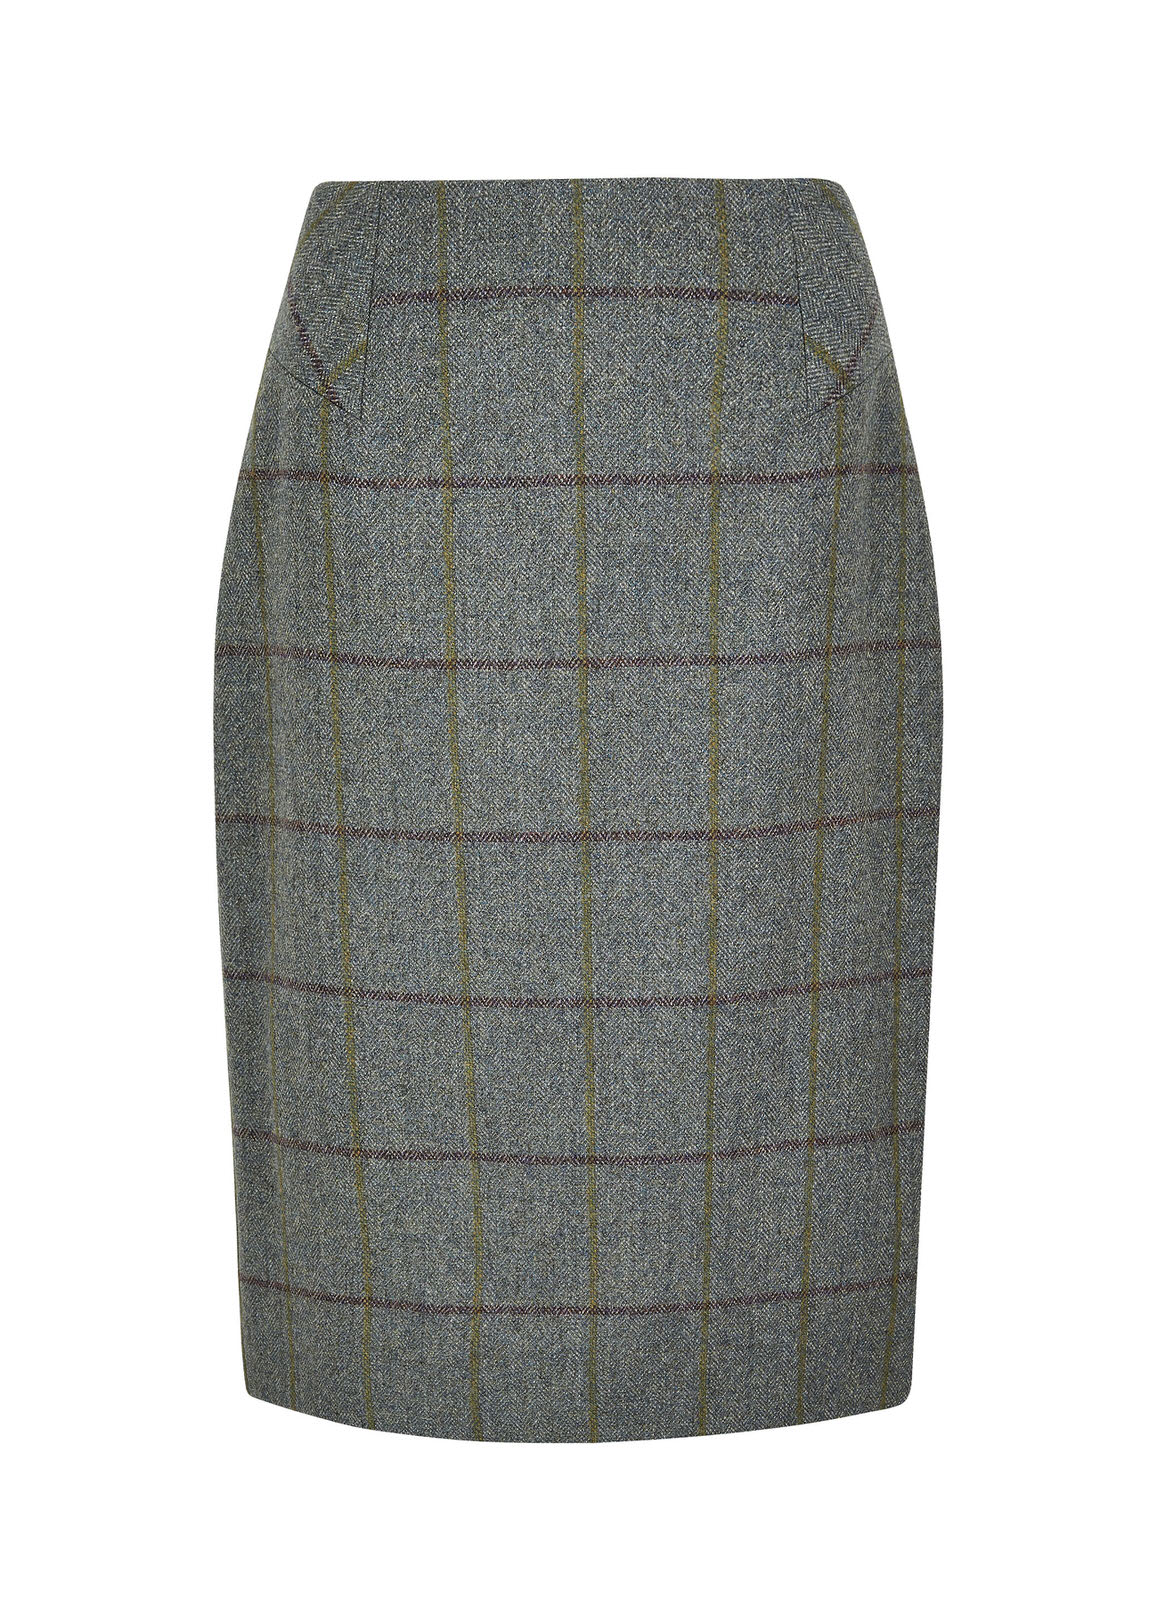 Fern_Tweed_Skirt_Sorrel_Image_1